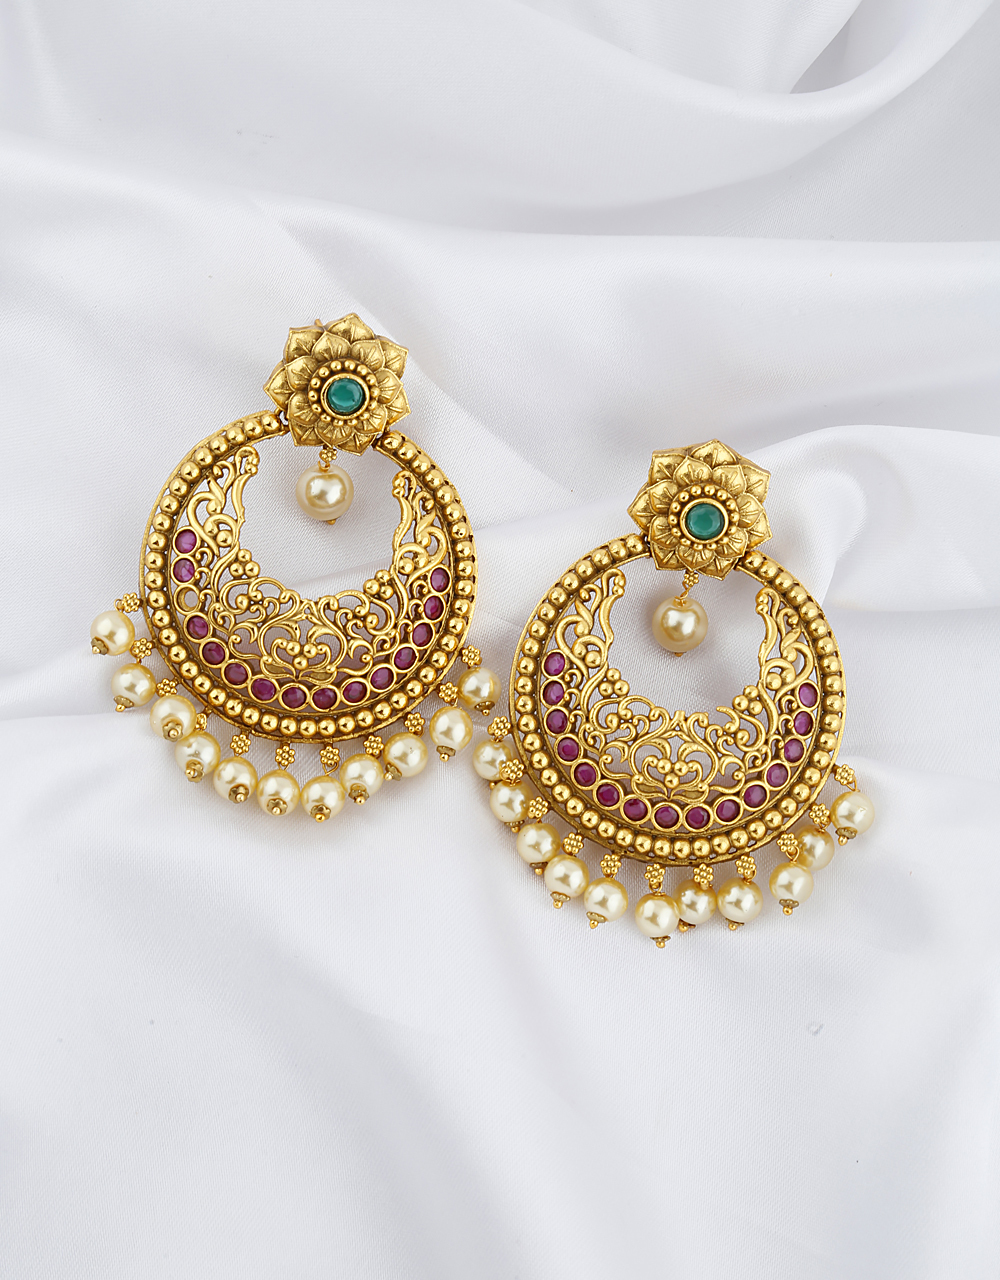 Ruby And Green Stones Studded Gold Finish Gold Beads Droplet Earrings Pair.